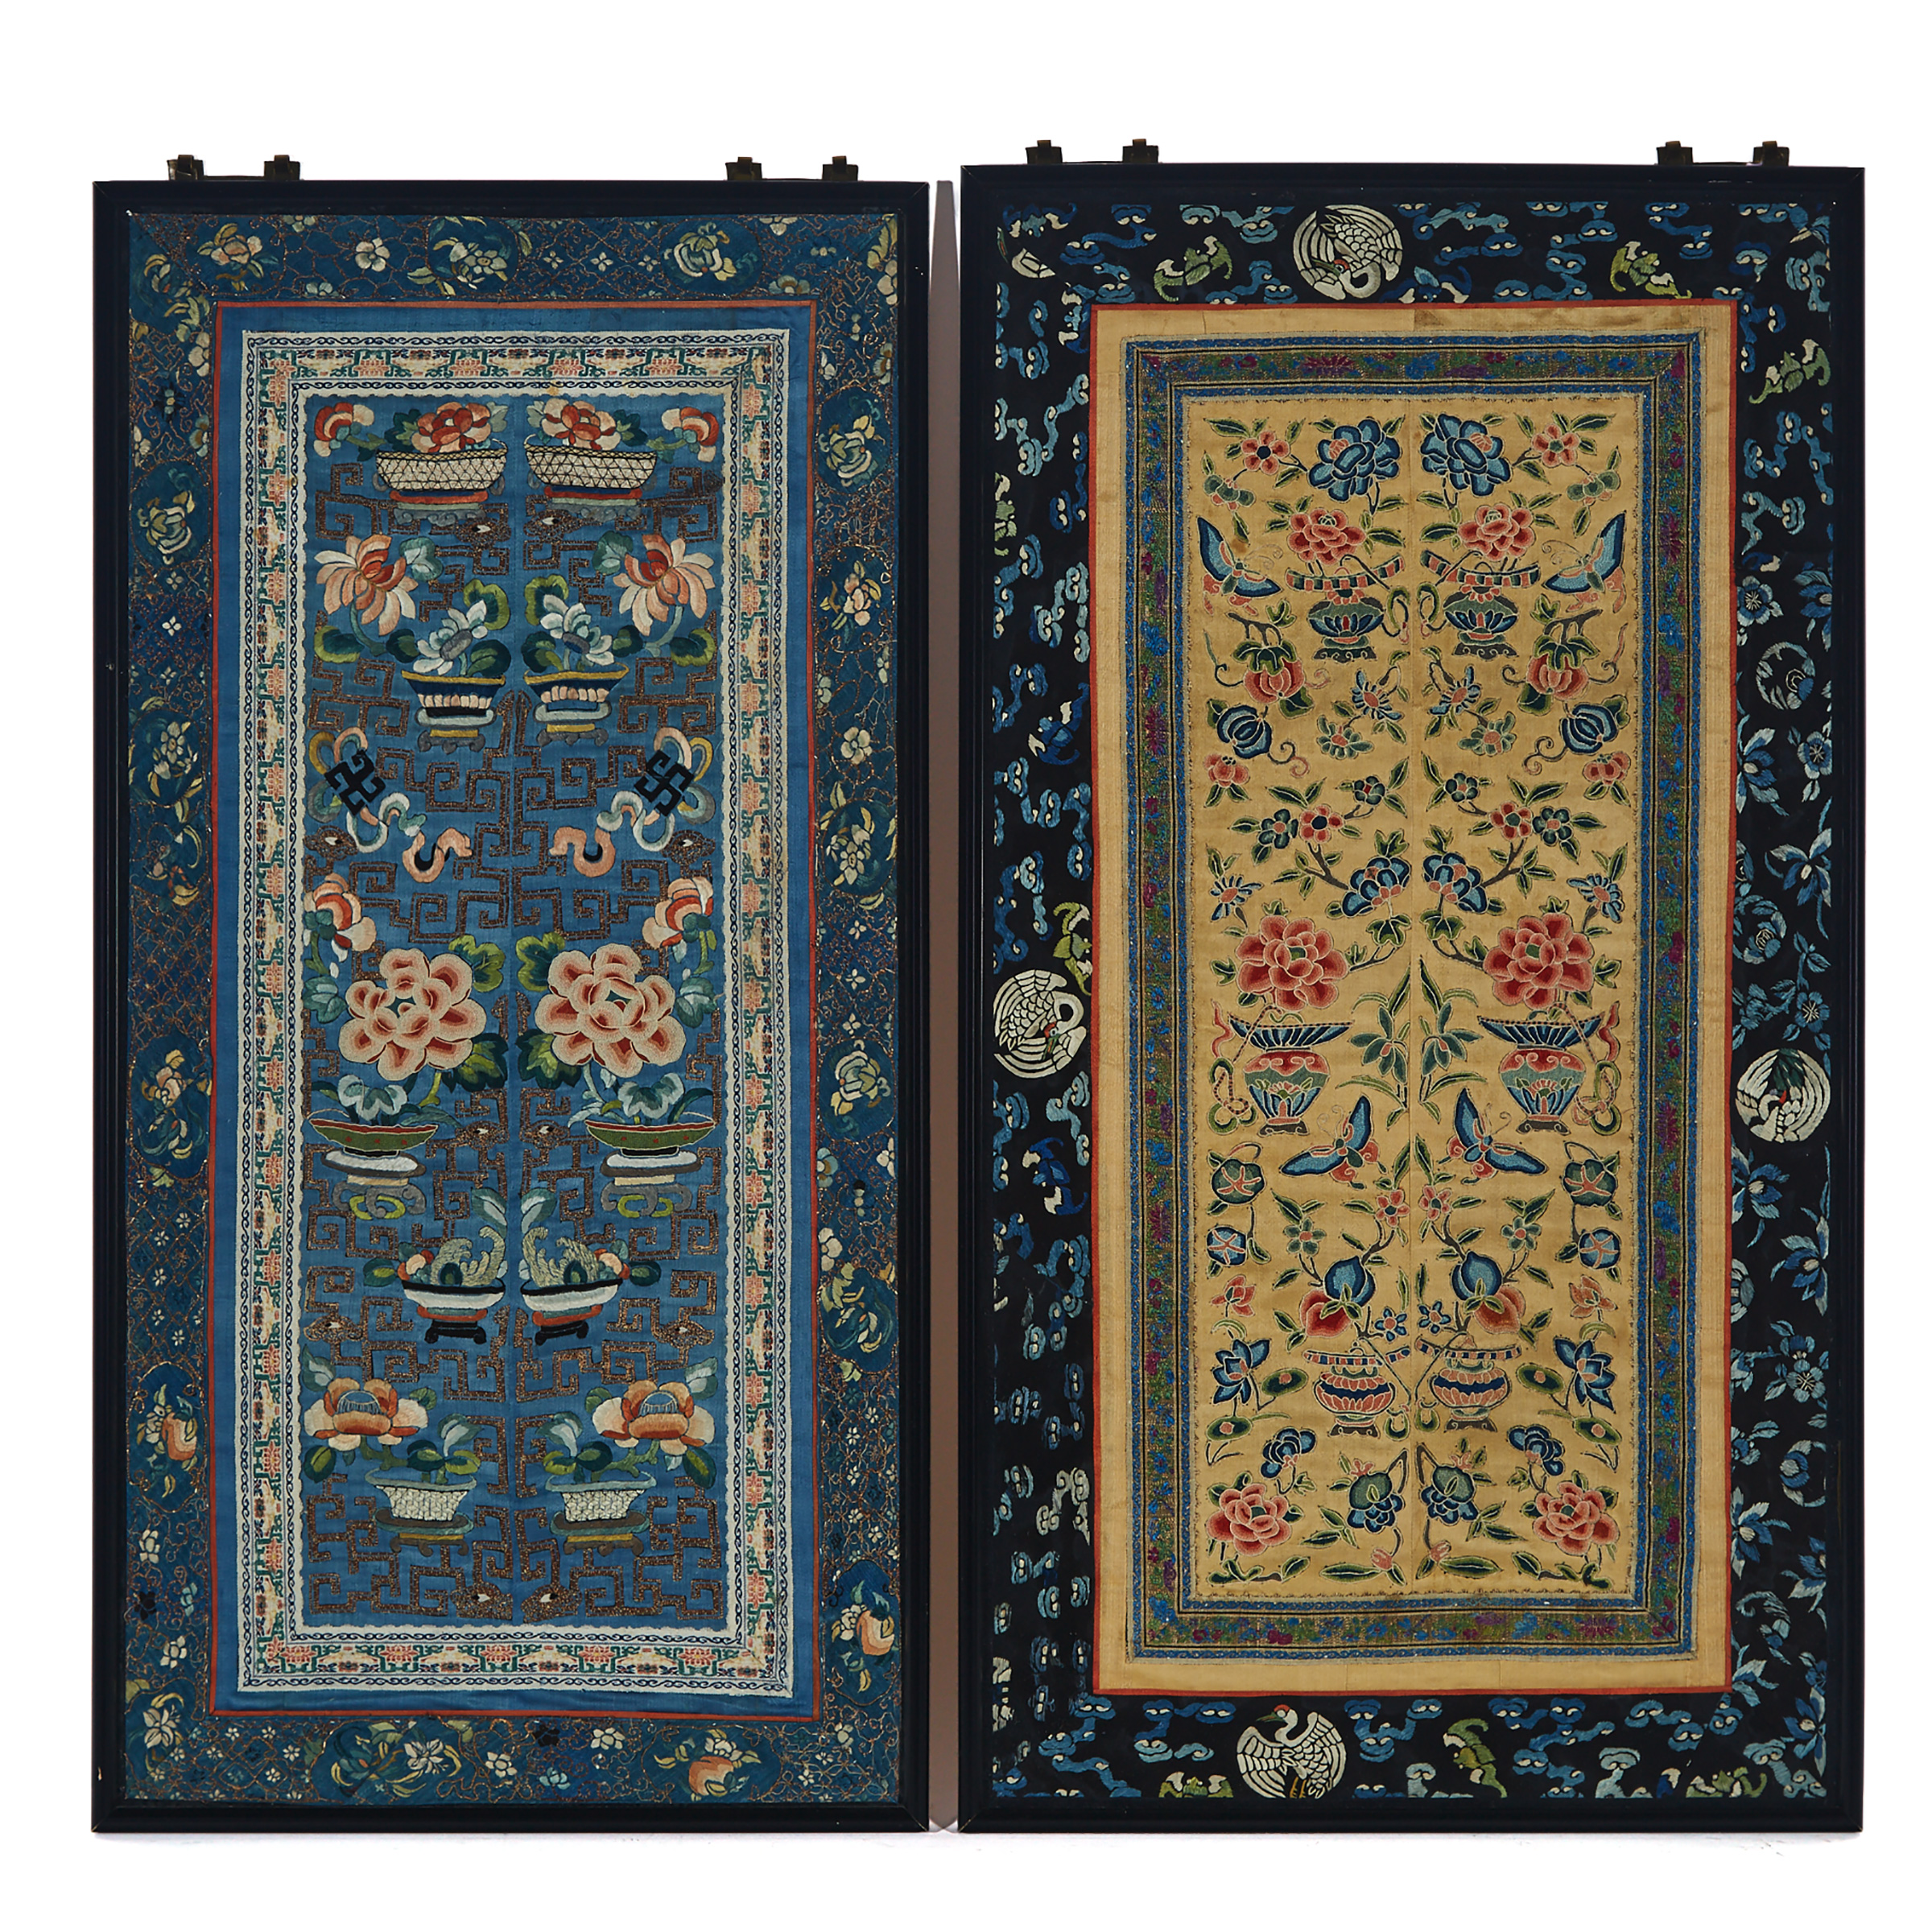 Two Framed Chinese Silk Embroideries